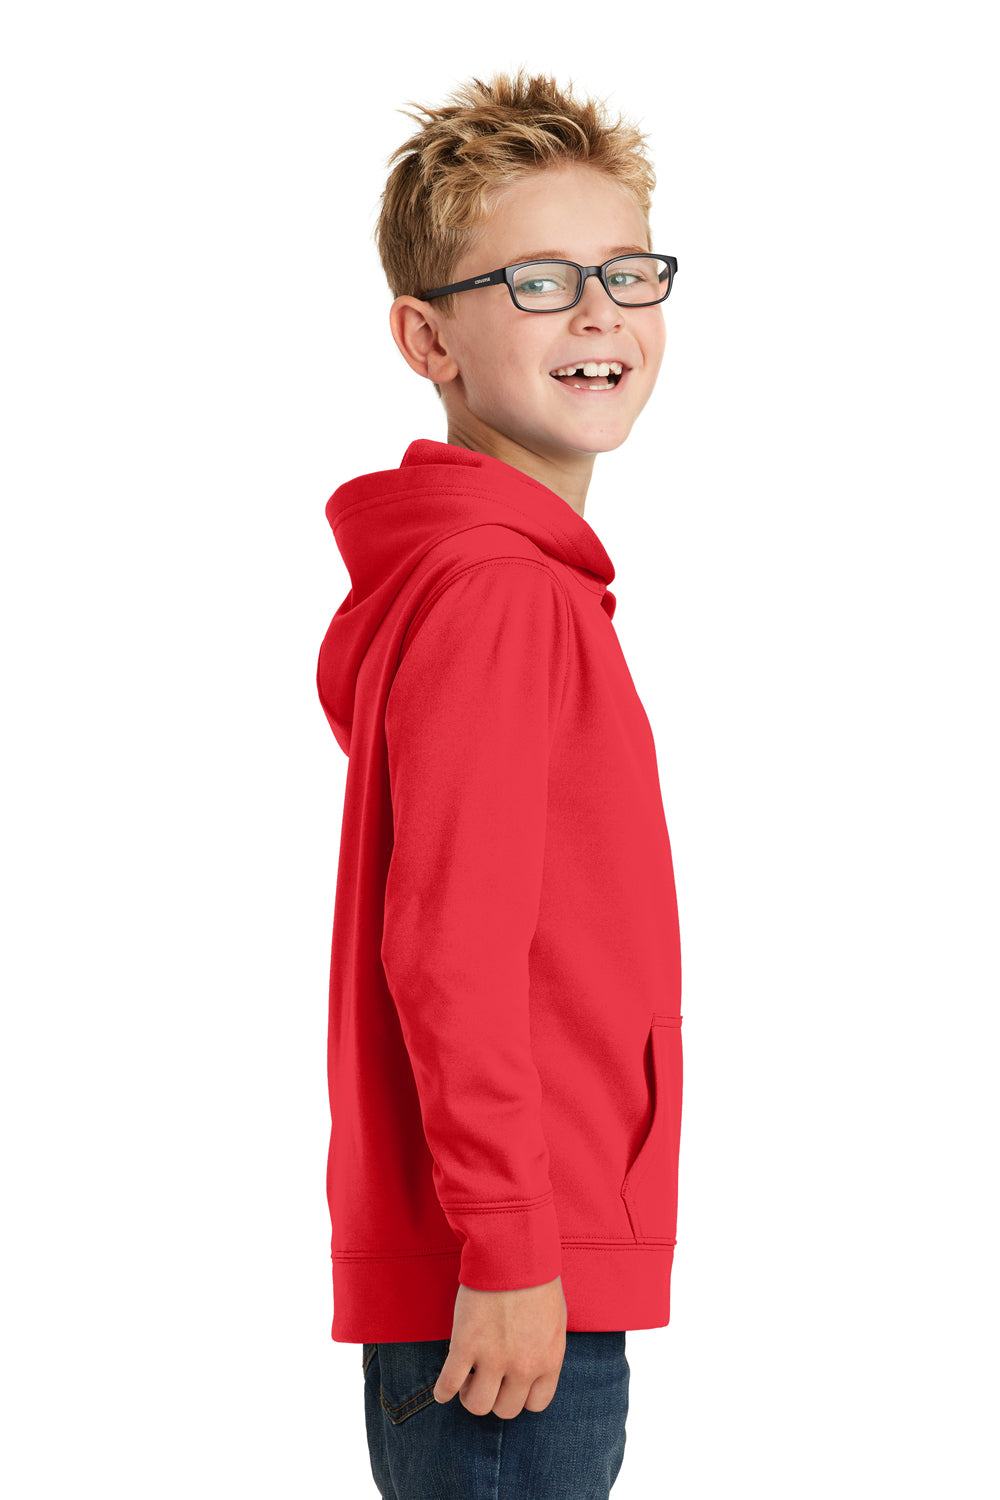 Port & Company PC590YH Youth Dry Zone Performance Moisture Wicking Fleece Hooded Sweatshirt Hoodie Red Side